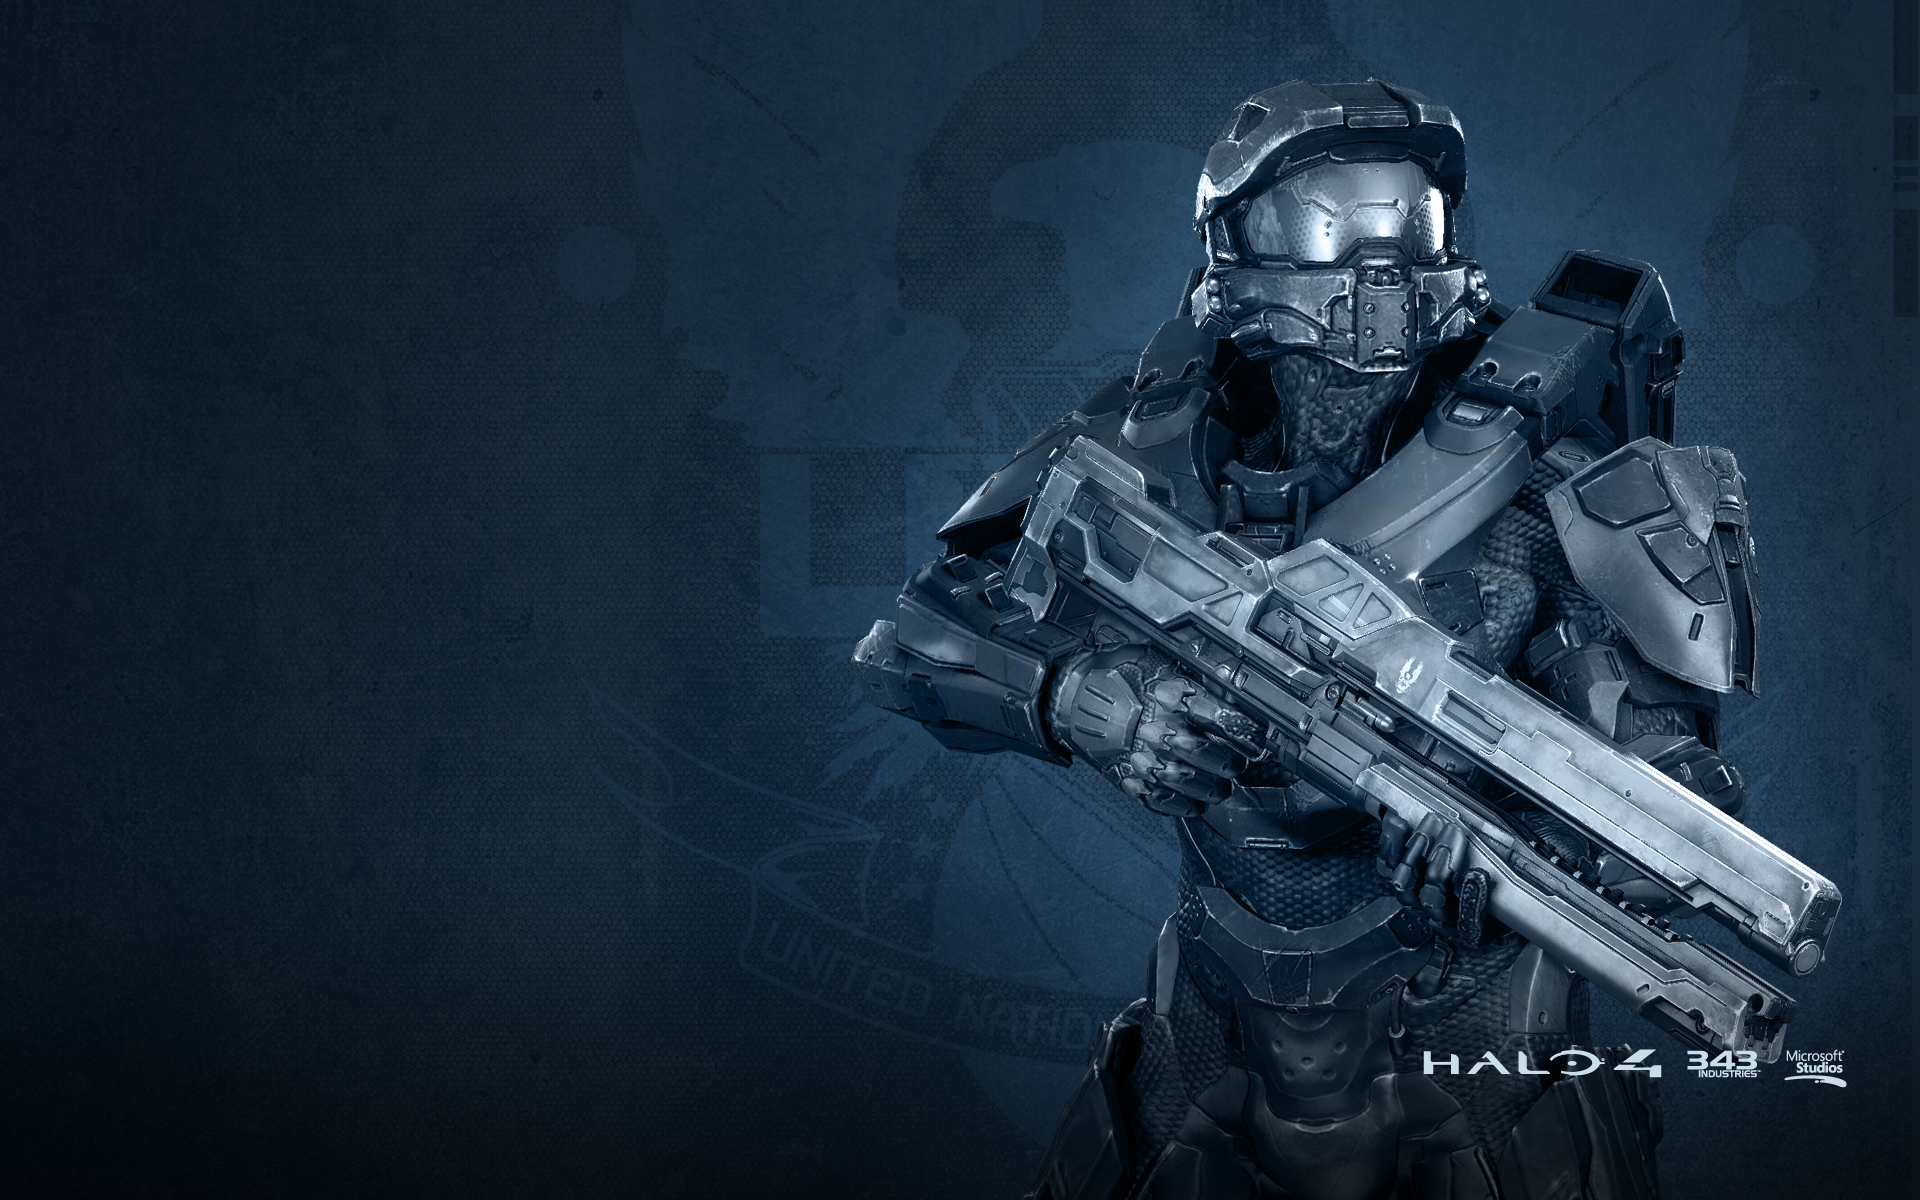 Halo Wallpaper HD download Wallpapers Backgrounds Images Art 1920x1200